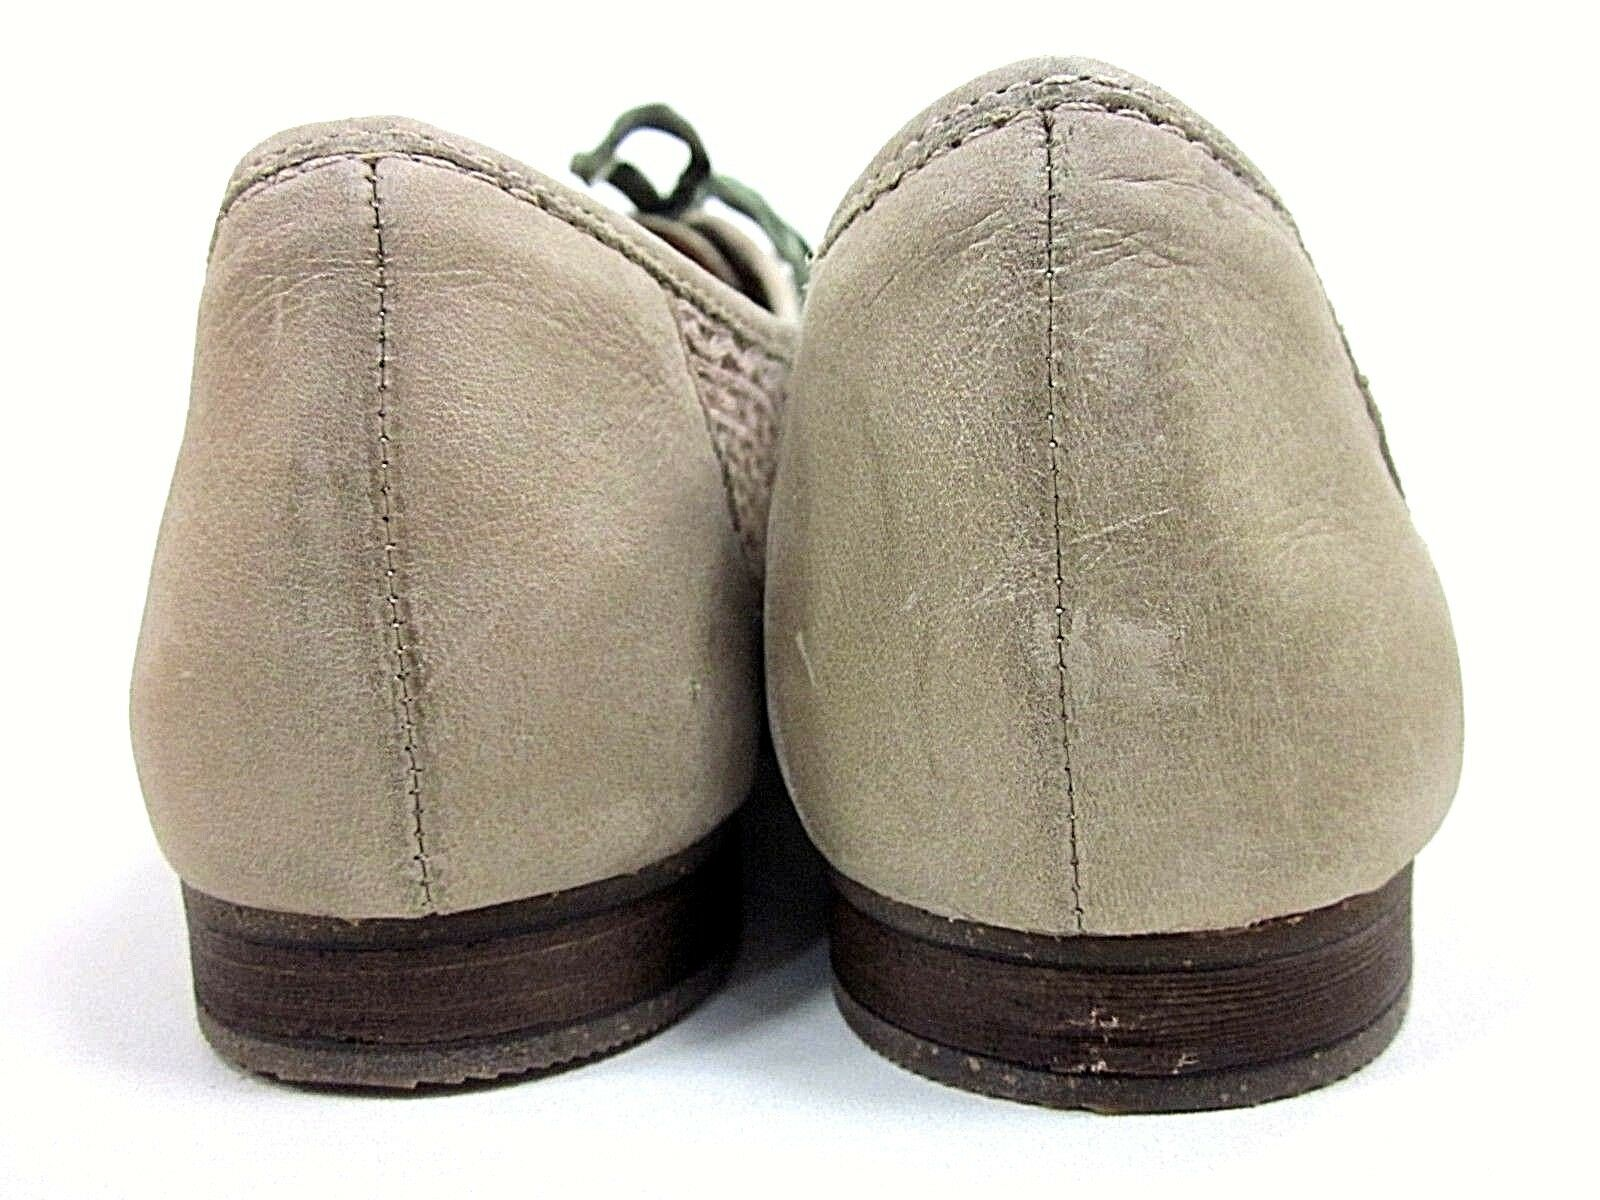 NAYA TRITE OXFORD WOMEN'S NEBBIA TAUPE NEW US SIZE 9.5 LEATHER/FABRIC NEW TAUPE /DISPLAY 48a09f